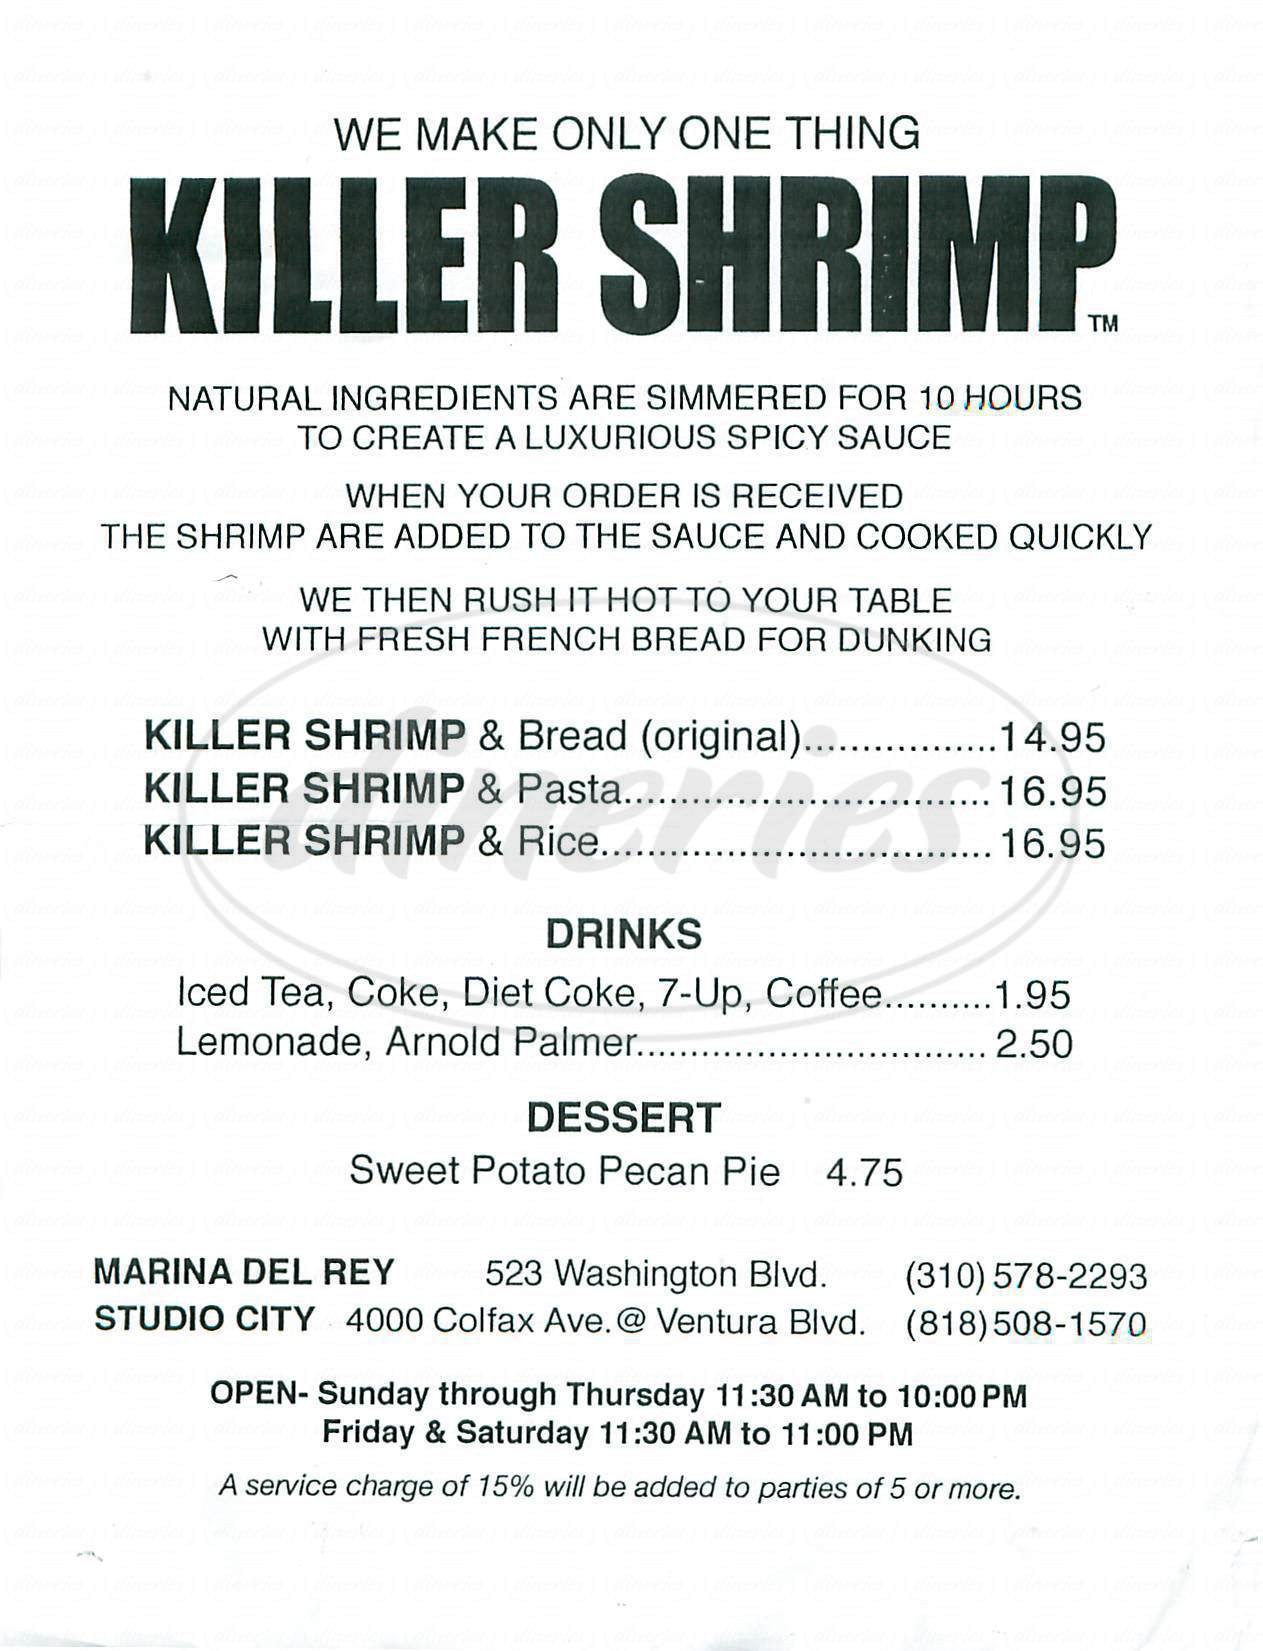 menu for Killer Shrimp